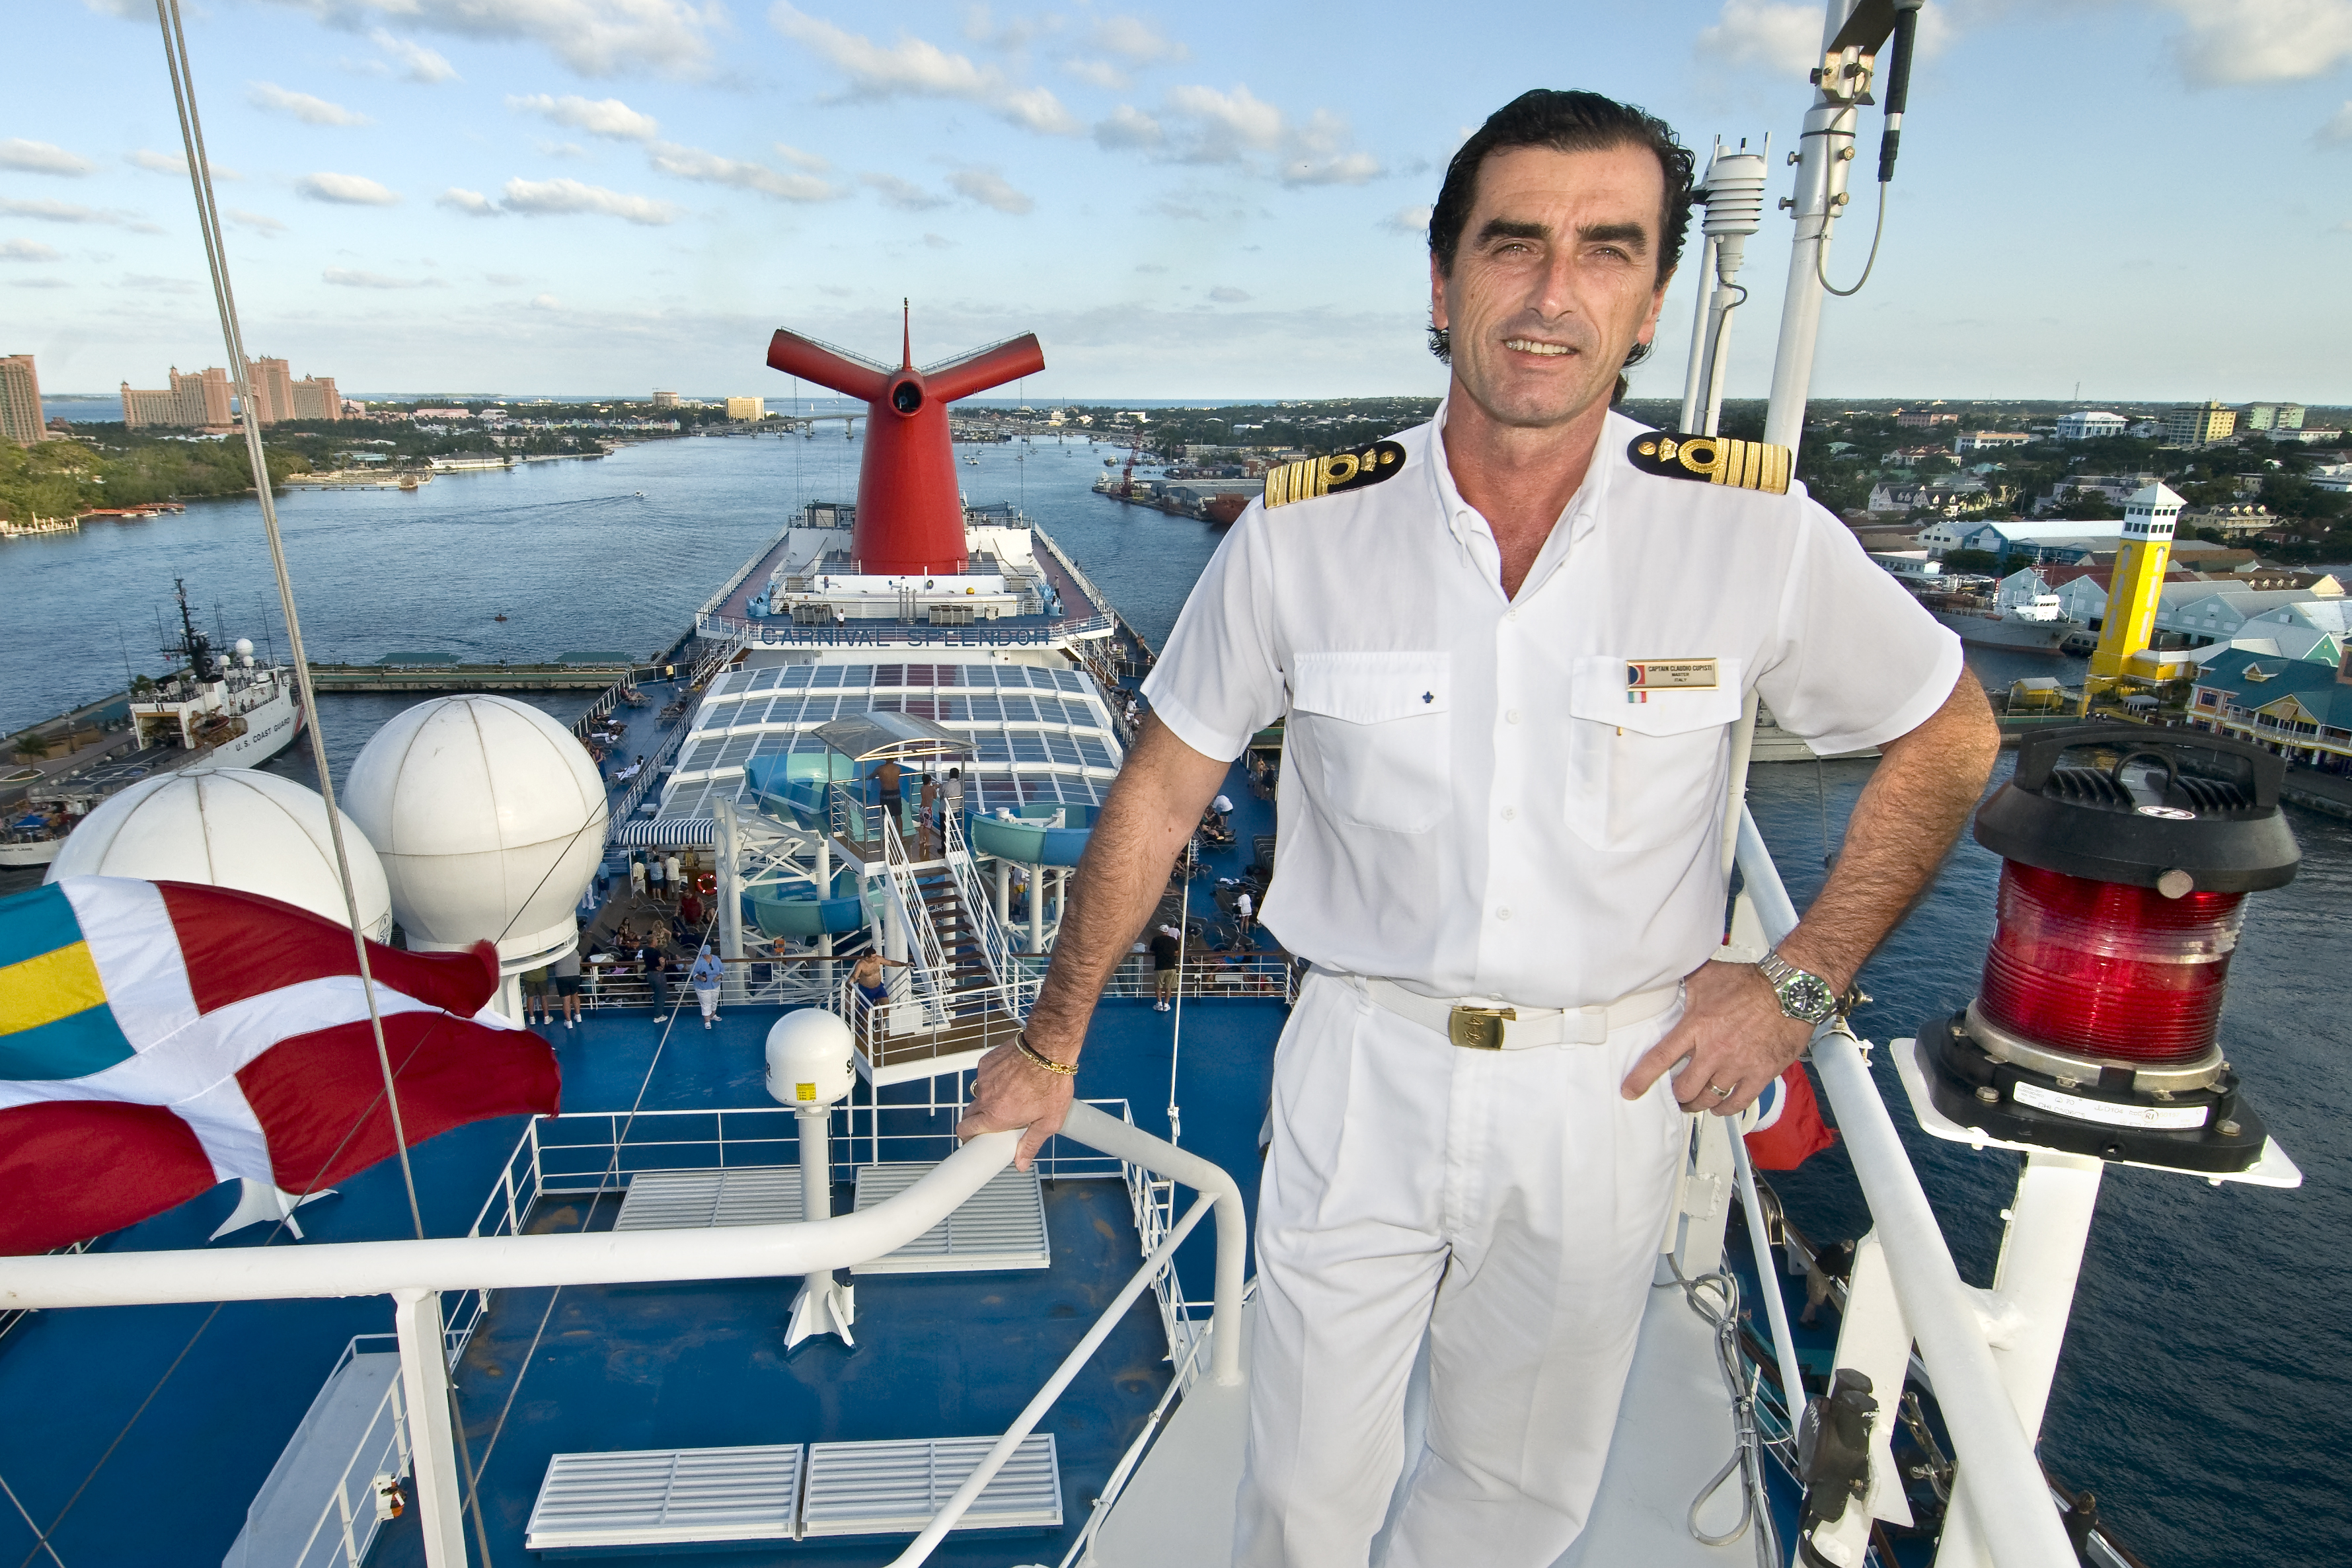 Carnival Cruise Line News - How to be a cruise ship captain